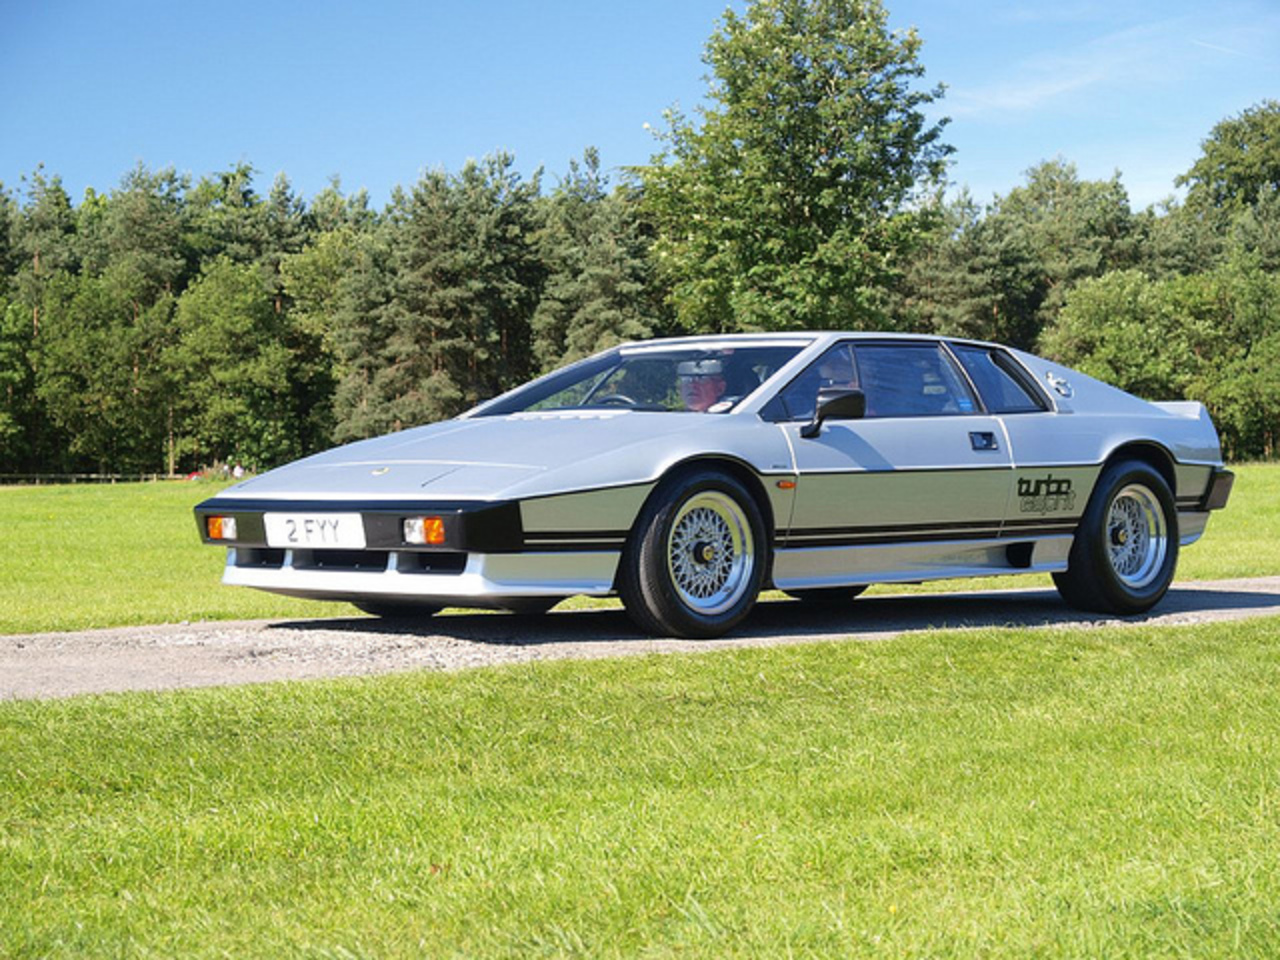 Lotus Esprit Turbo Sports Cars - 1983 | Flickr - Photo Sharing!